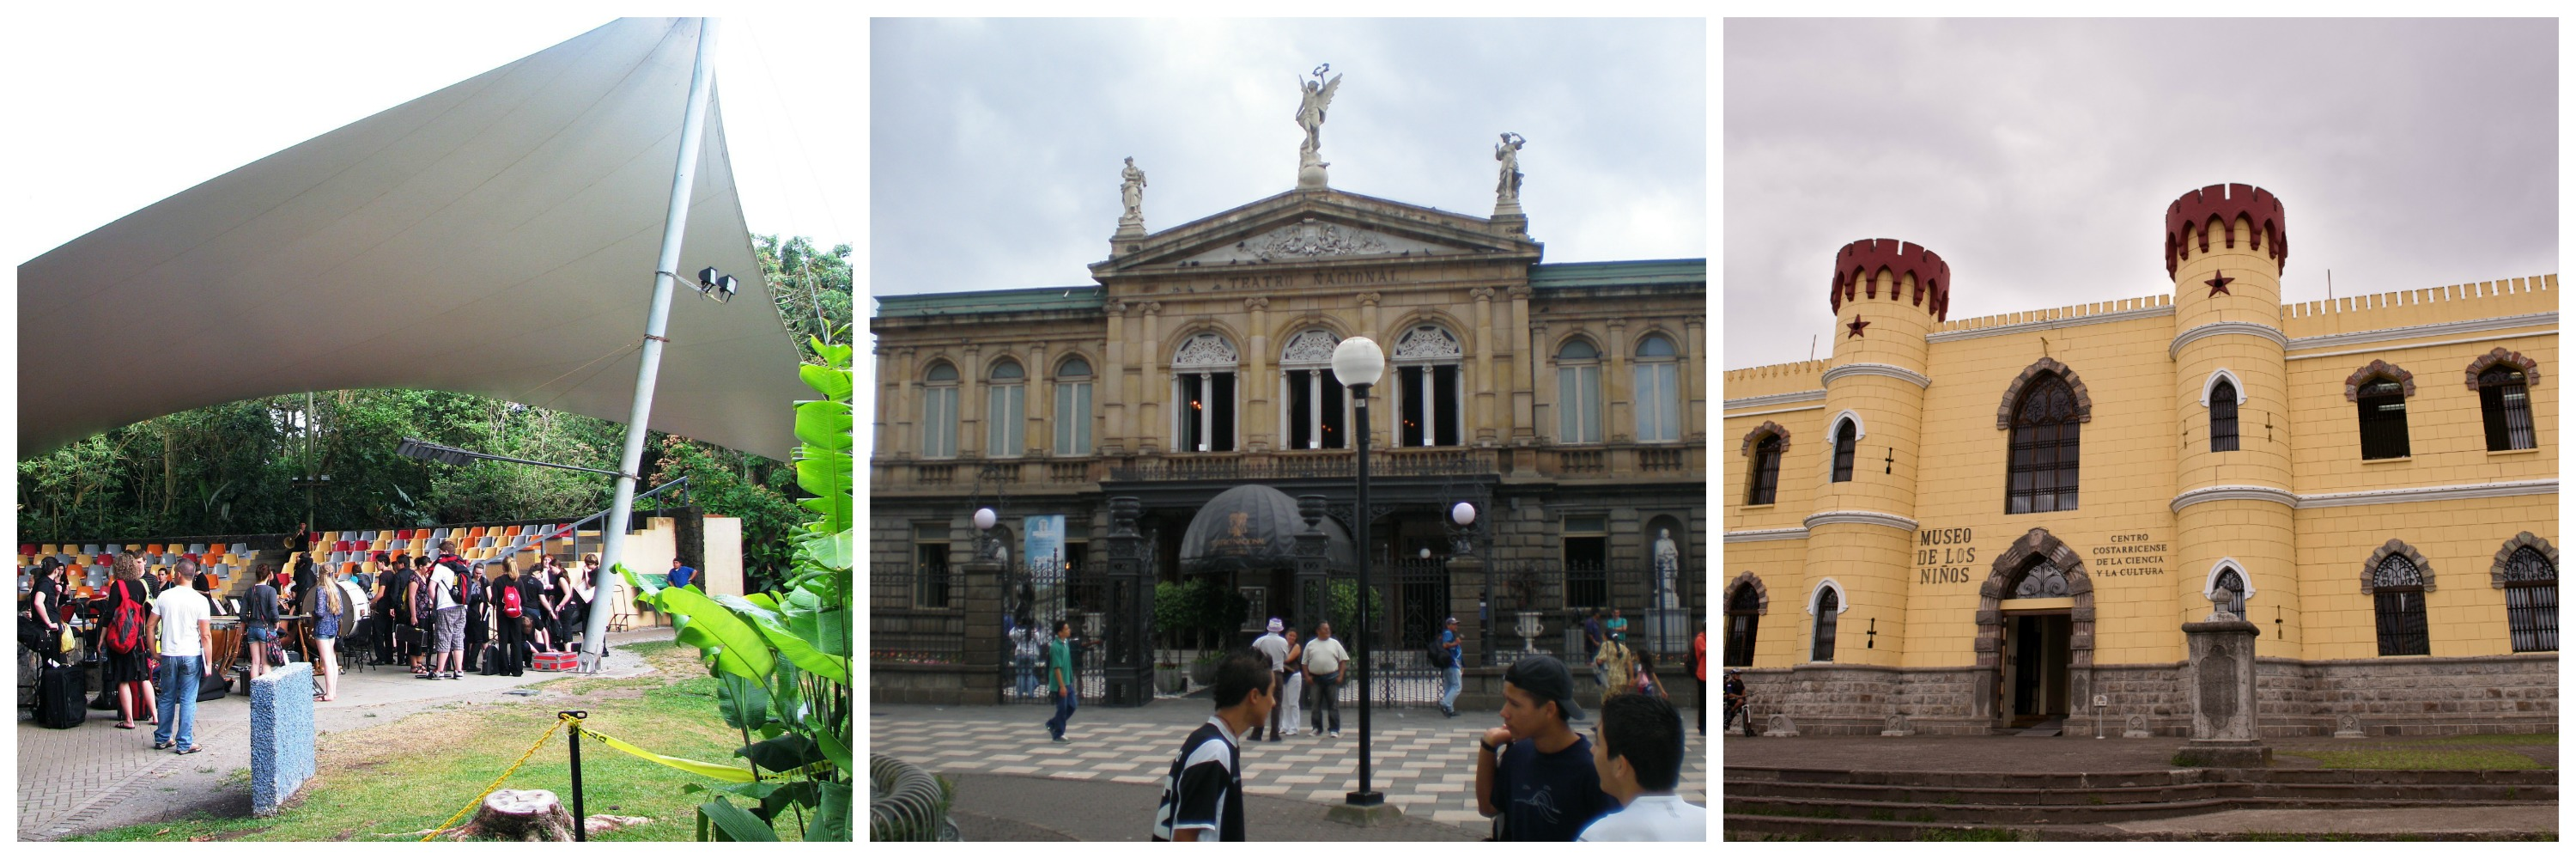 Left: Band gathering in outdoor amphitheatre, carrying their instruments in cases and milling about | Middle: The facade of the Teatro Nacional, which boasts beautiful Neoclassical architecture | Right: The facade of the Museo de los Niños, which resembles a miniature castle